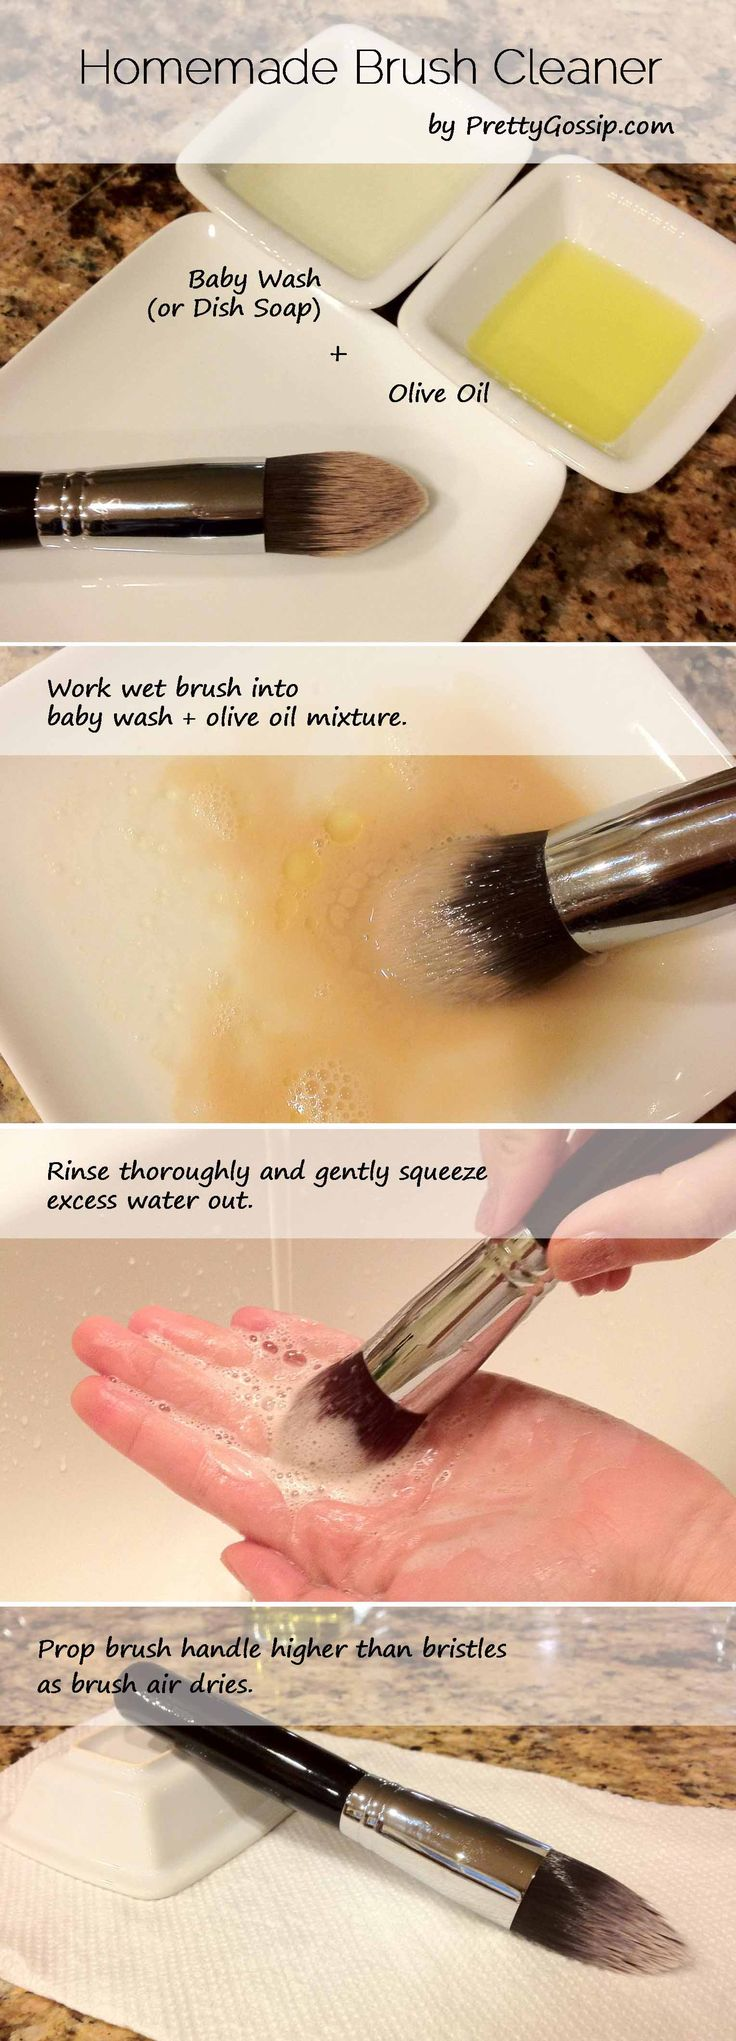 Makeup brush cleaner. This really is a great way to clean your brushes. Another pinner did this and said they feel soft and like new.